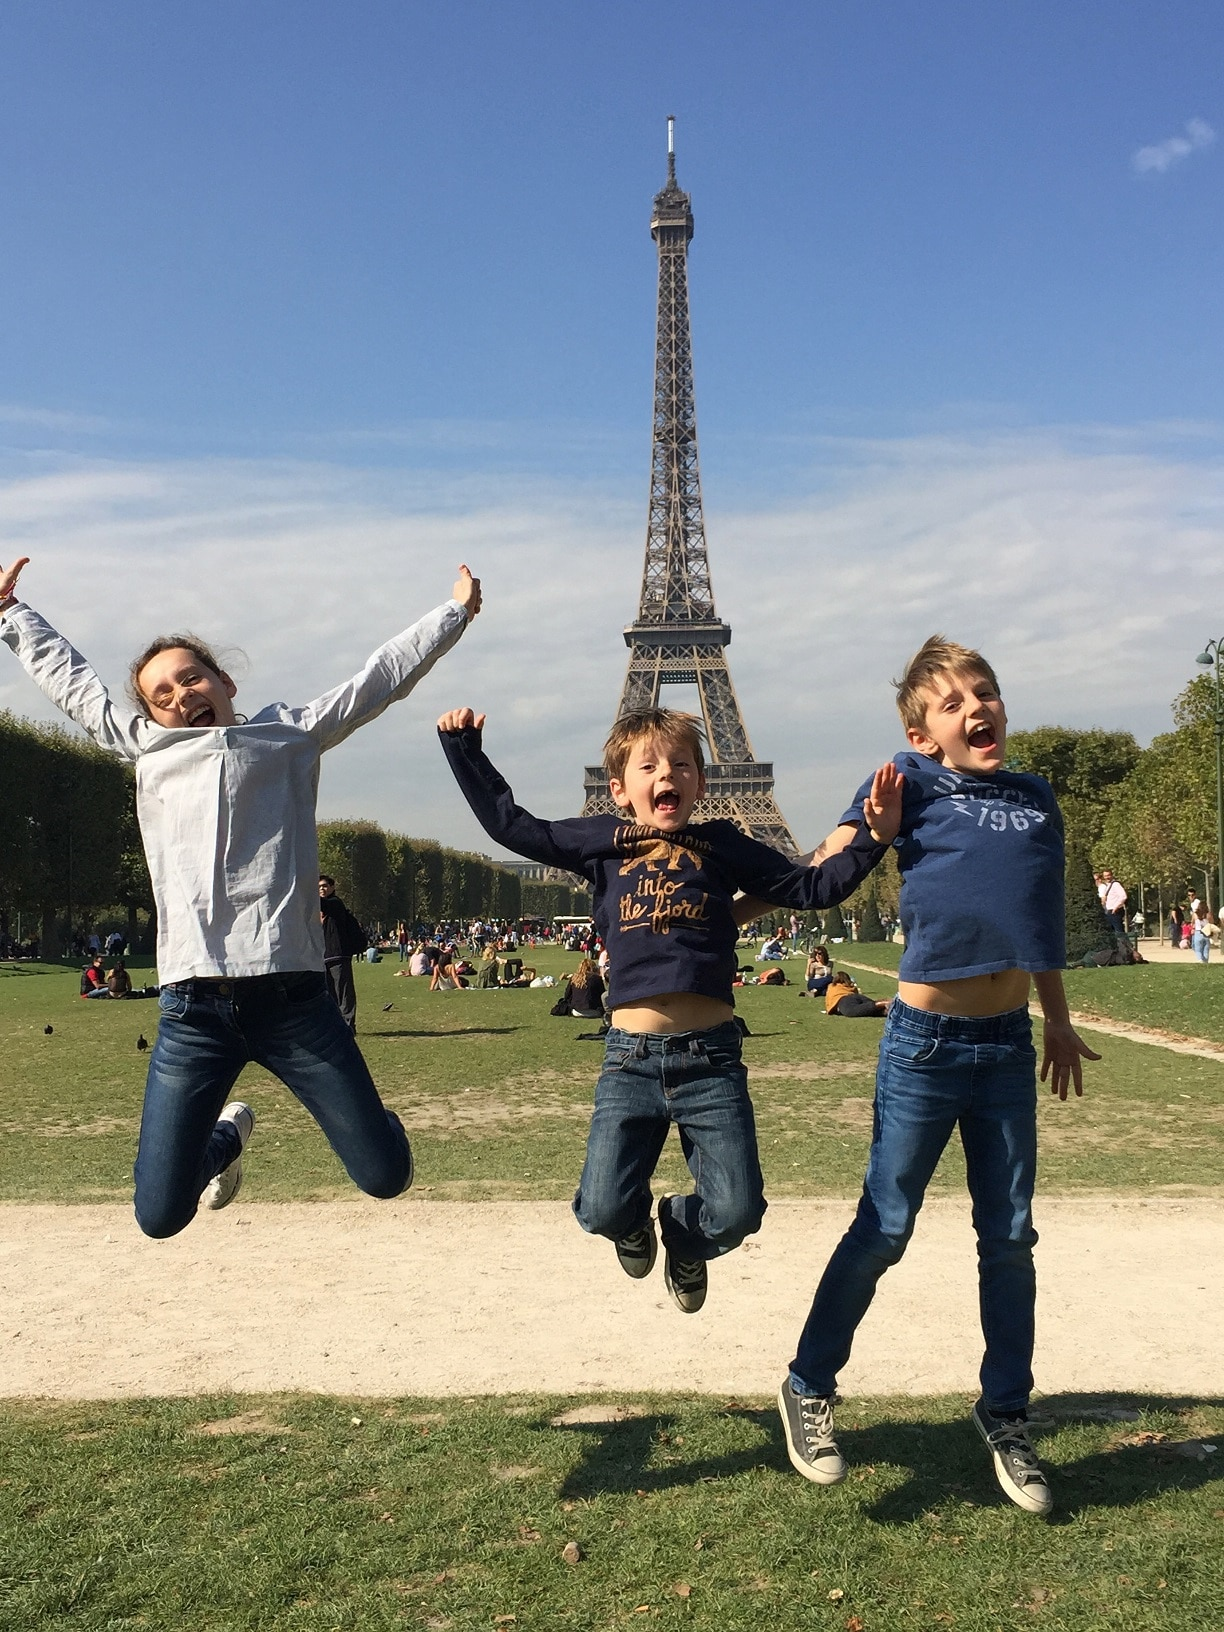 Enfants devant la tour eiffel Paris